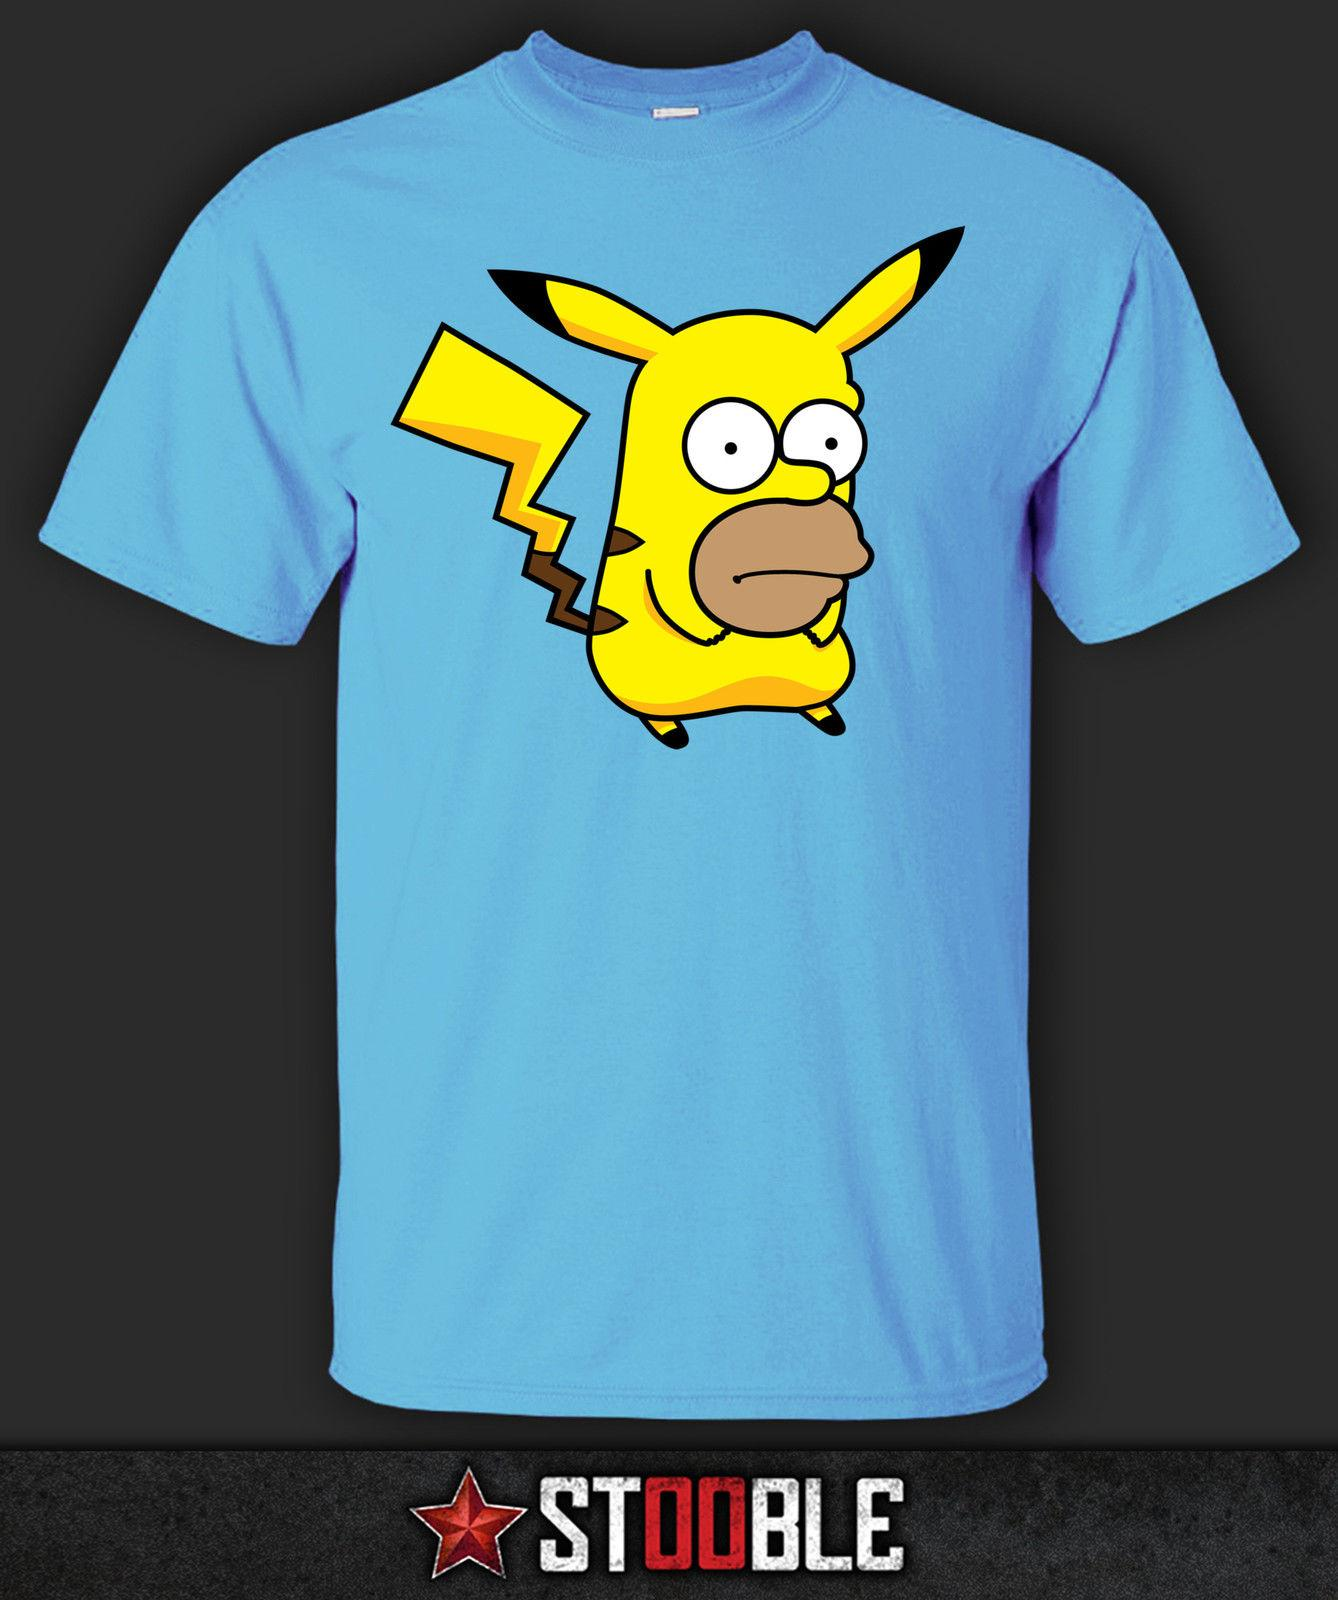 Homerchu T Shirt Direct From Stockist Funny Unisex Casual Tshirt Gift  Ridiculous T Shirt Best T Shirts Sites From Carenthusiast 8609fc355096